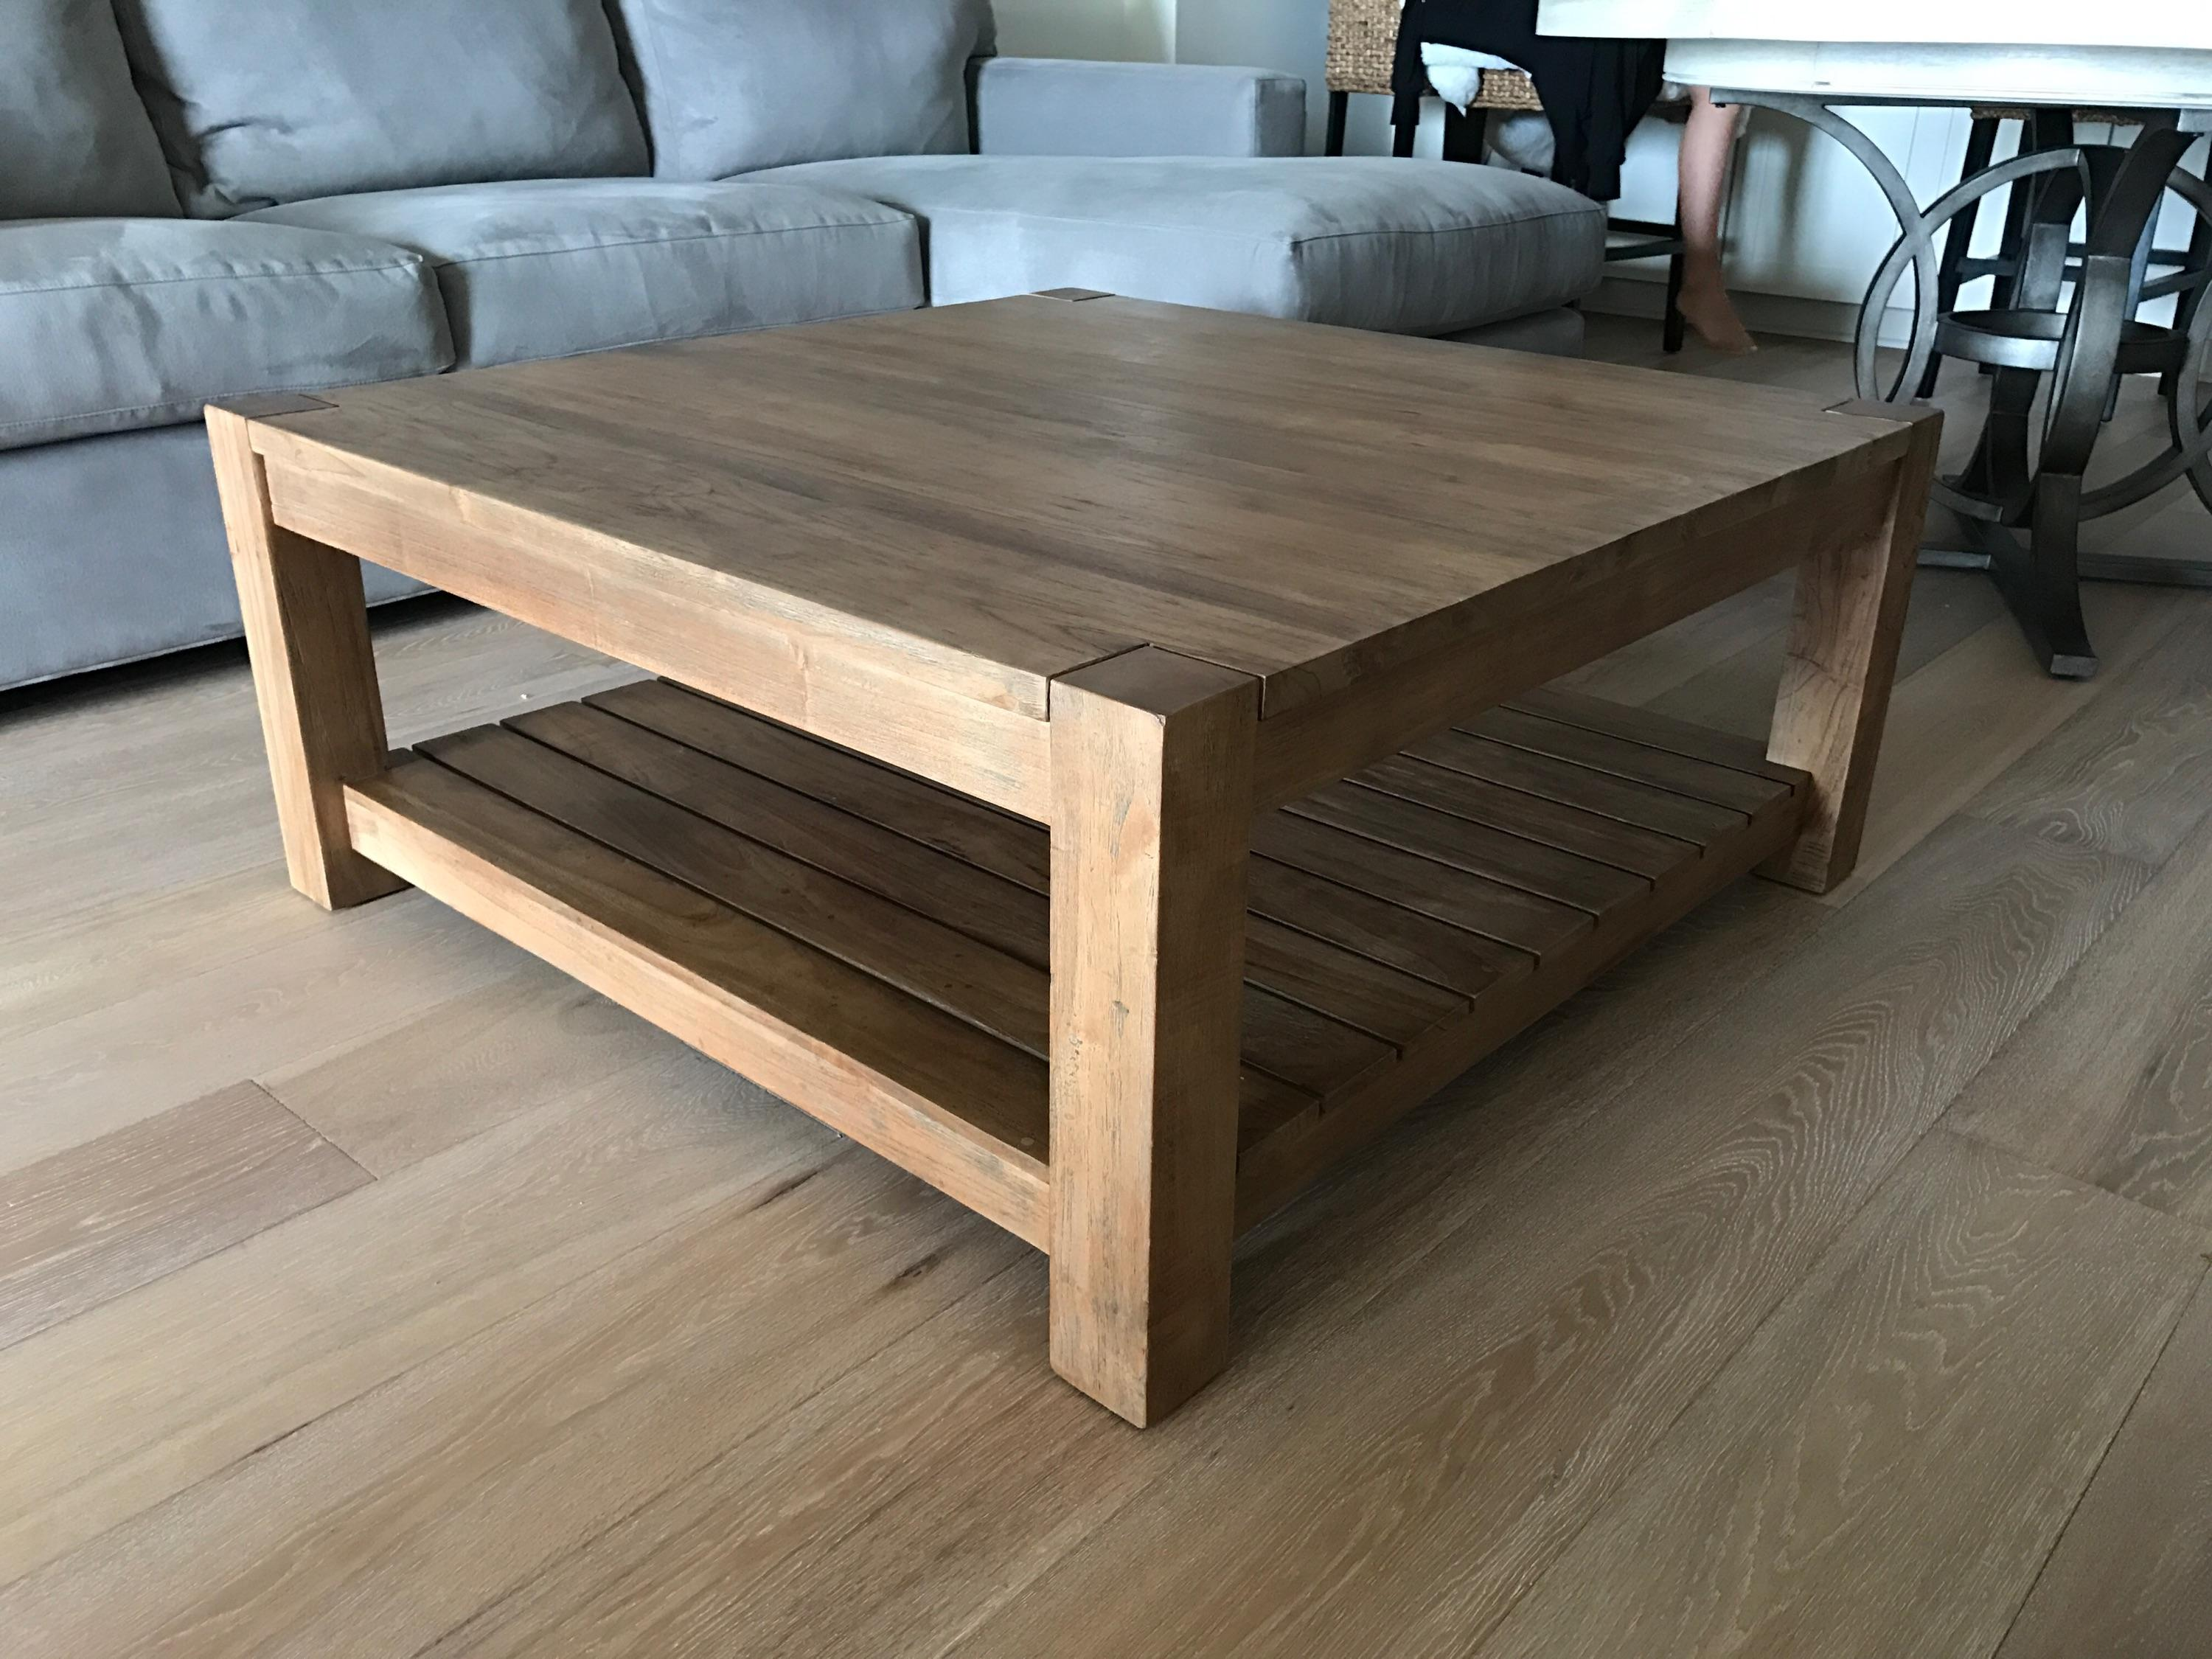 crate and barrel edgewood square coffee table